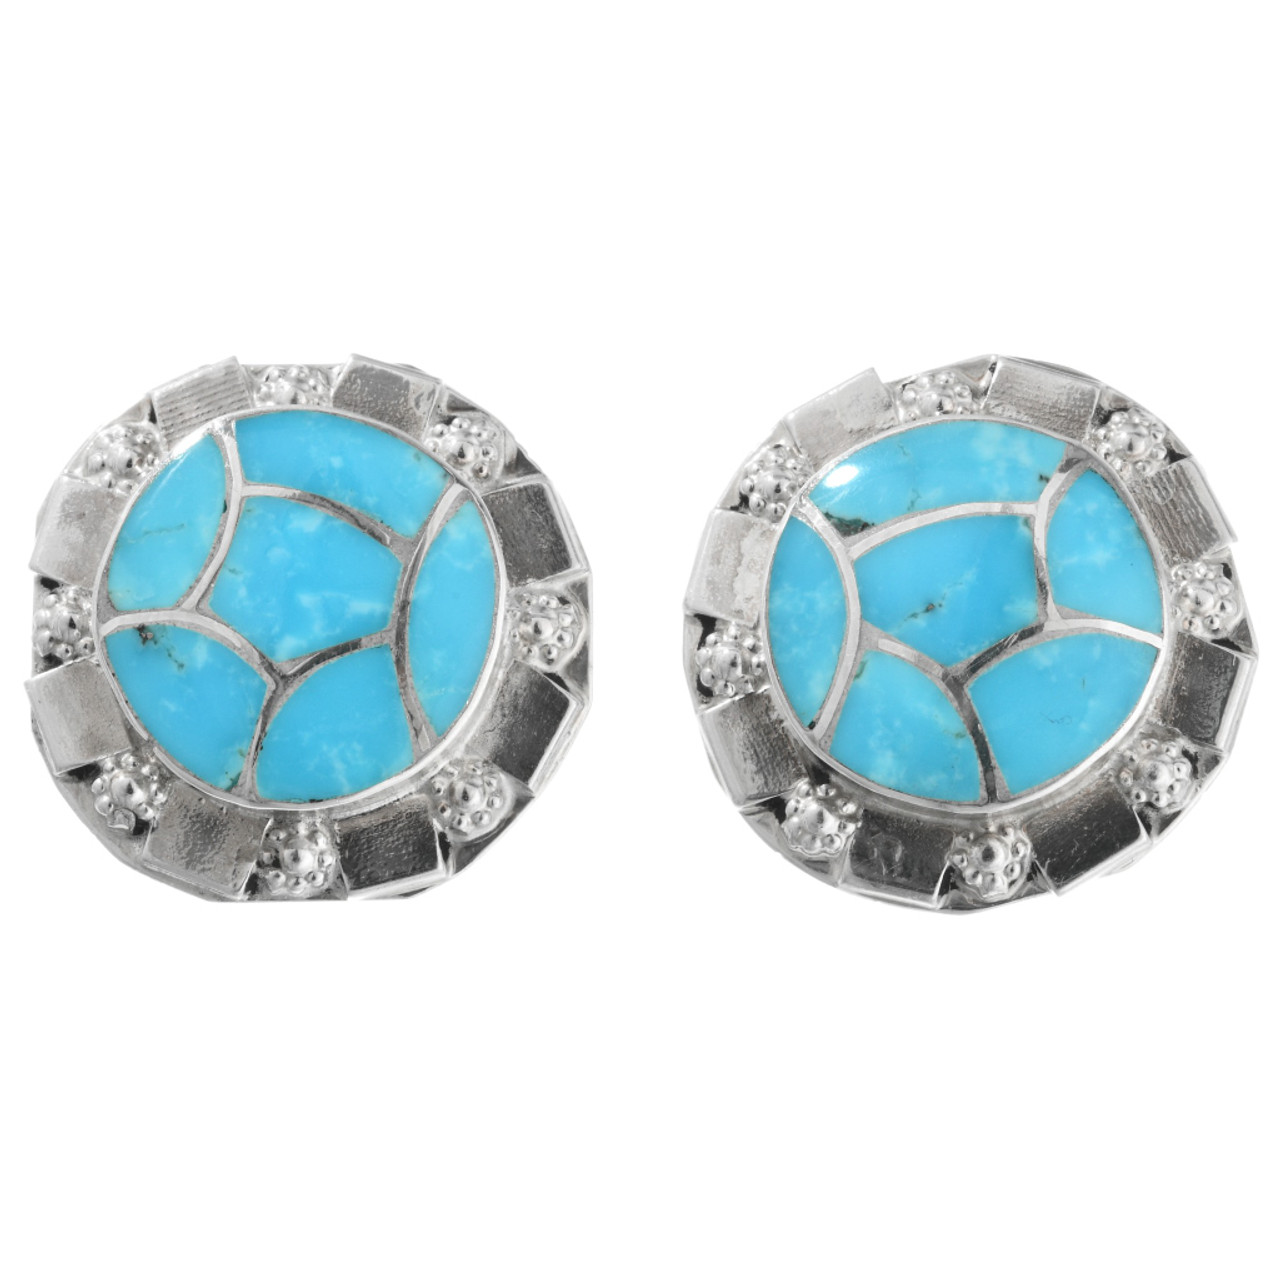 61b2e8650 Zuni Inlaid Turquoise Post Earrings 32137